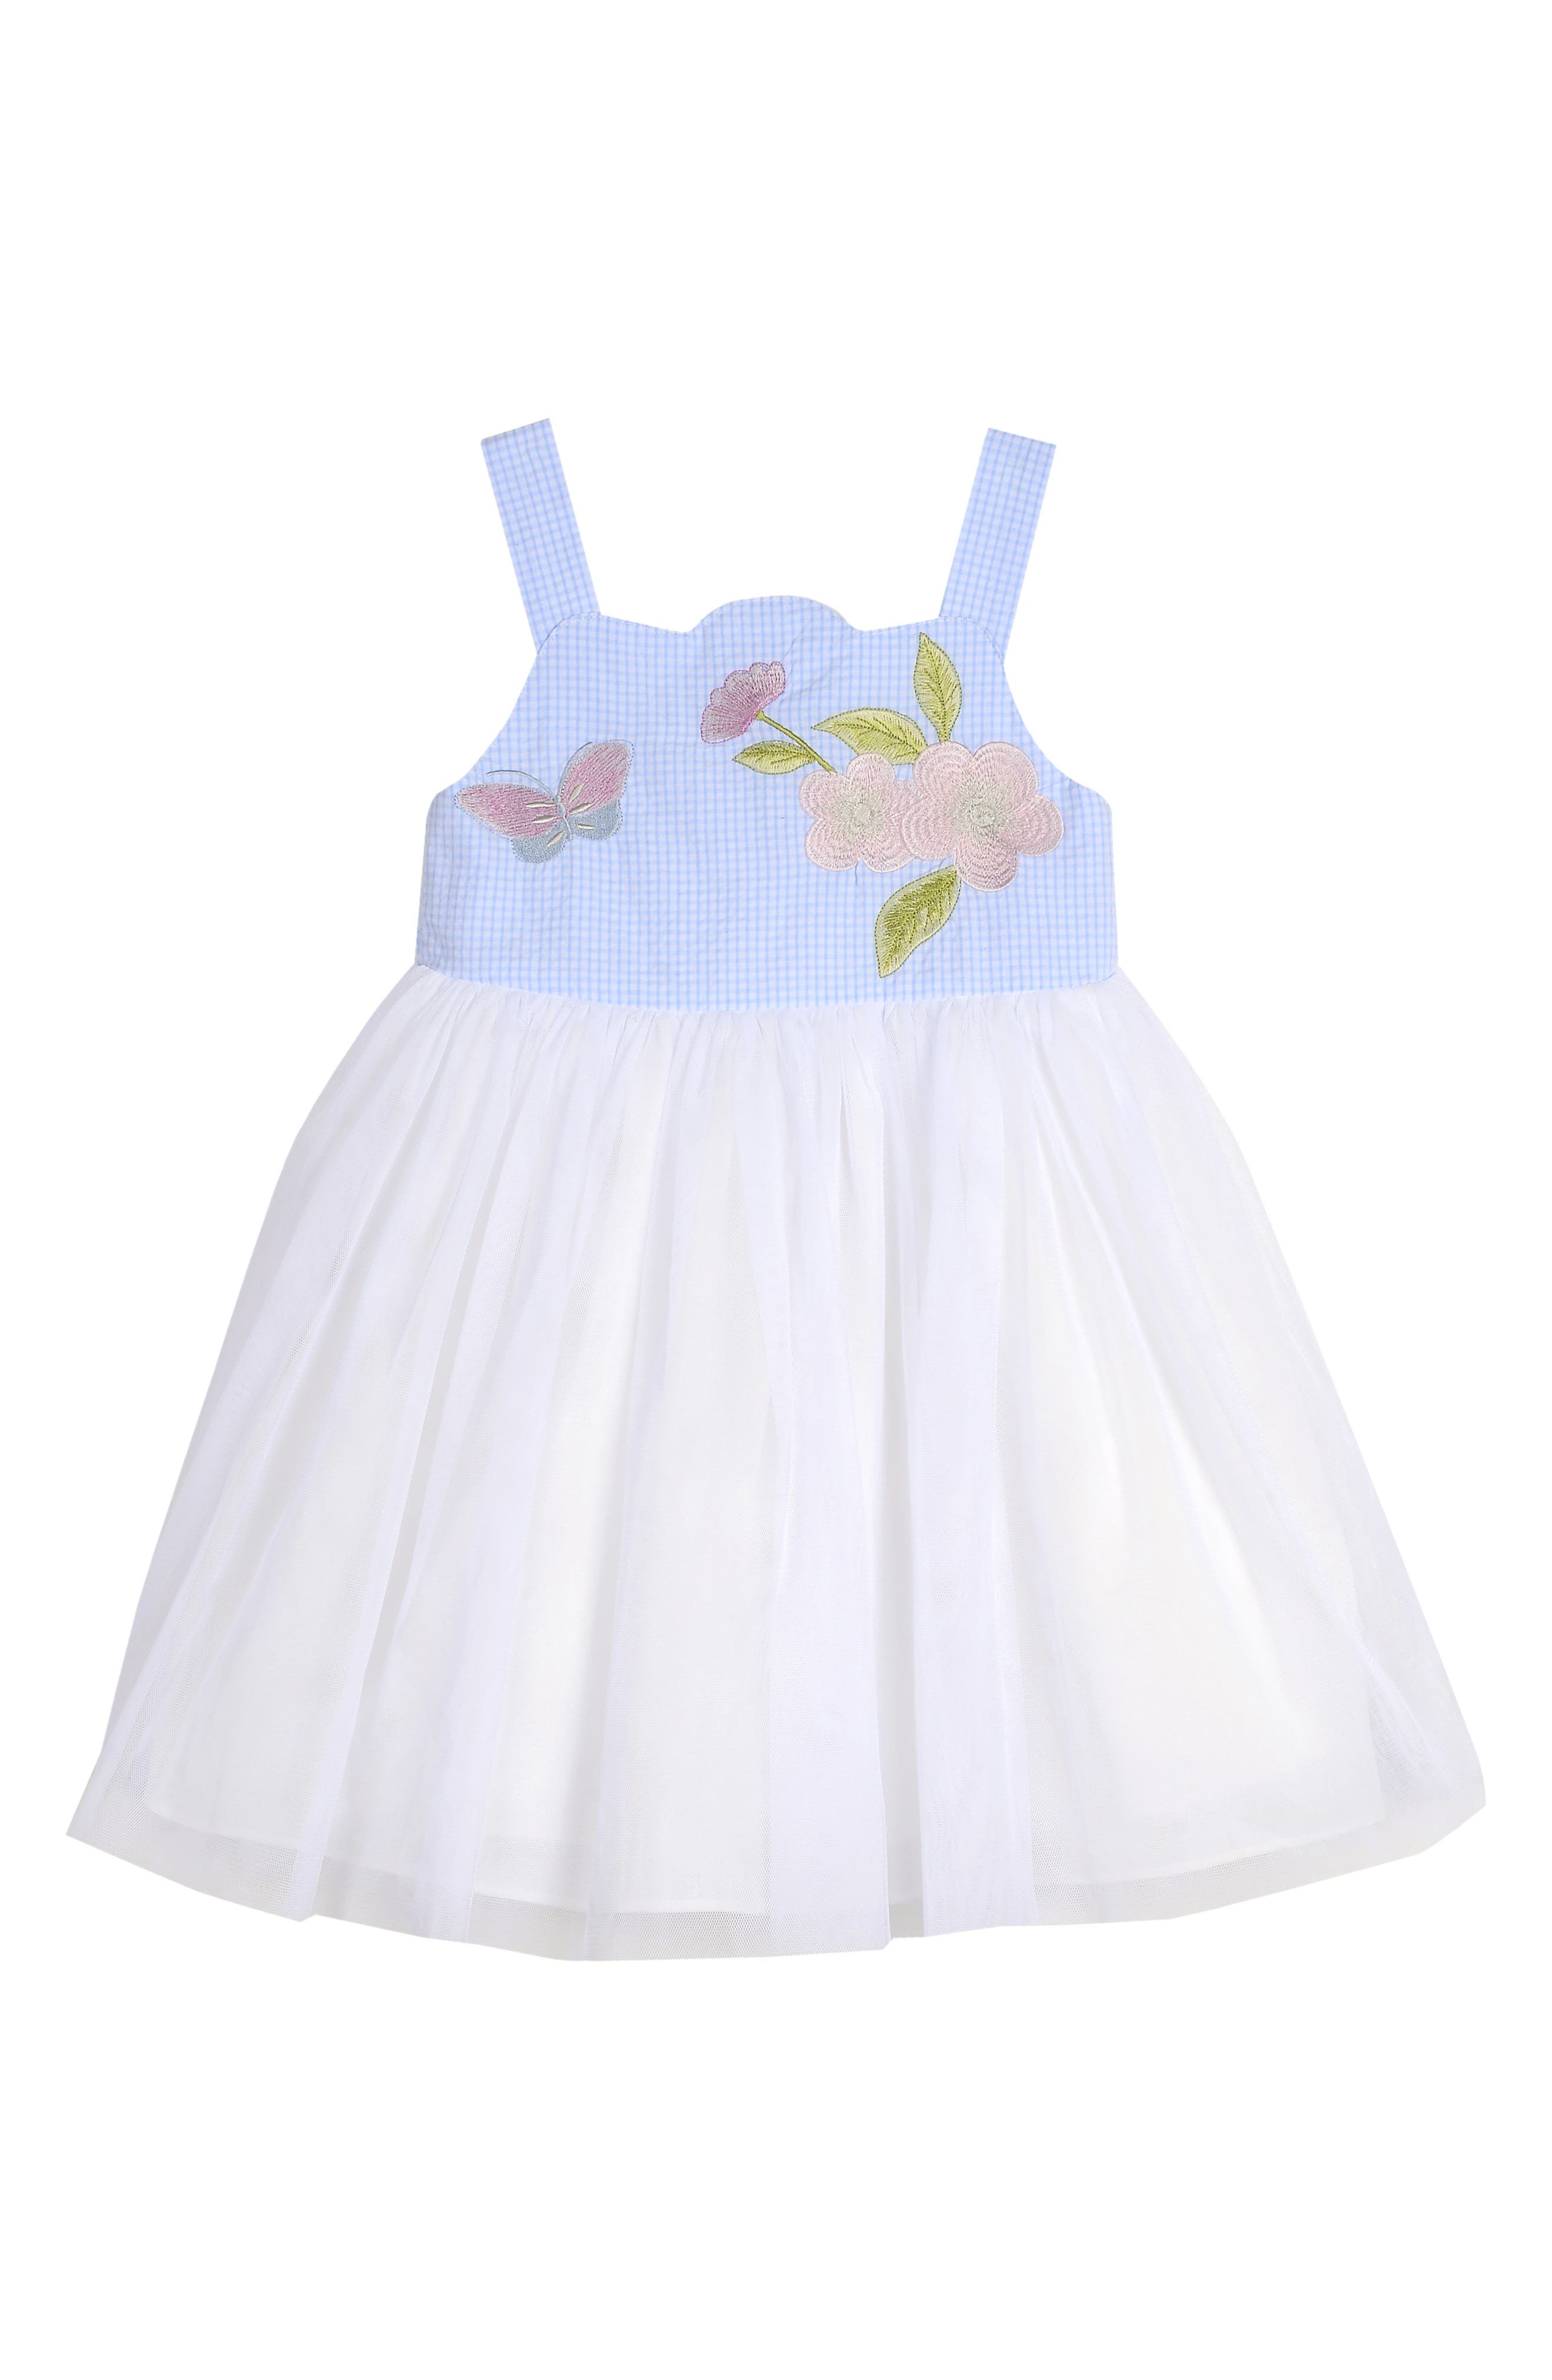 PIPPA & JULIE, Floral Embroidered Tutu Dress, Main thumbnail 1, color, BLUE/ WHITE